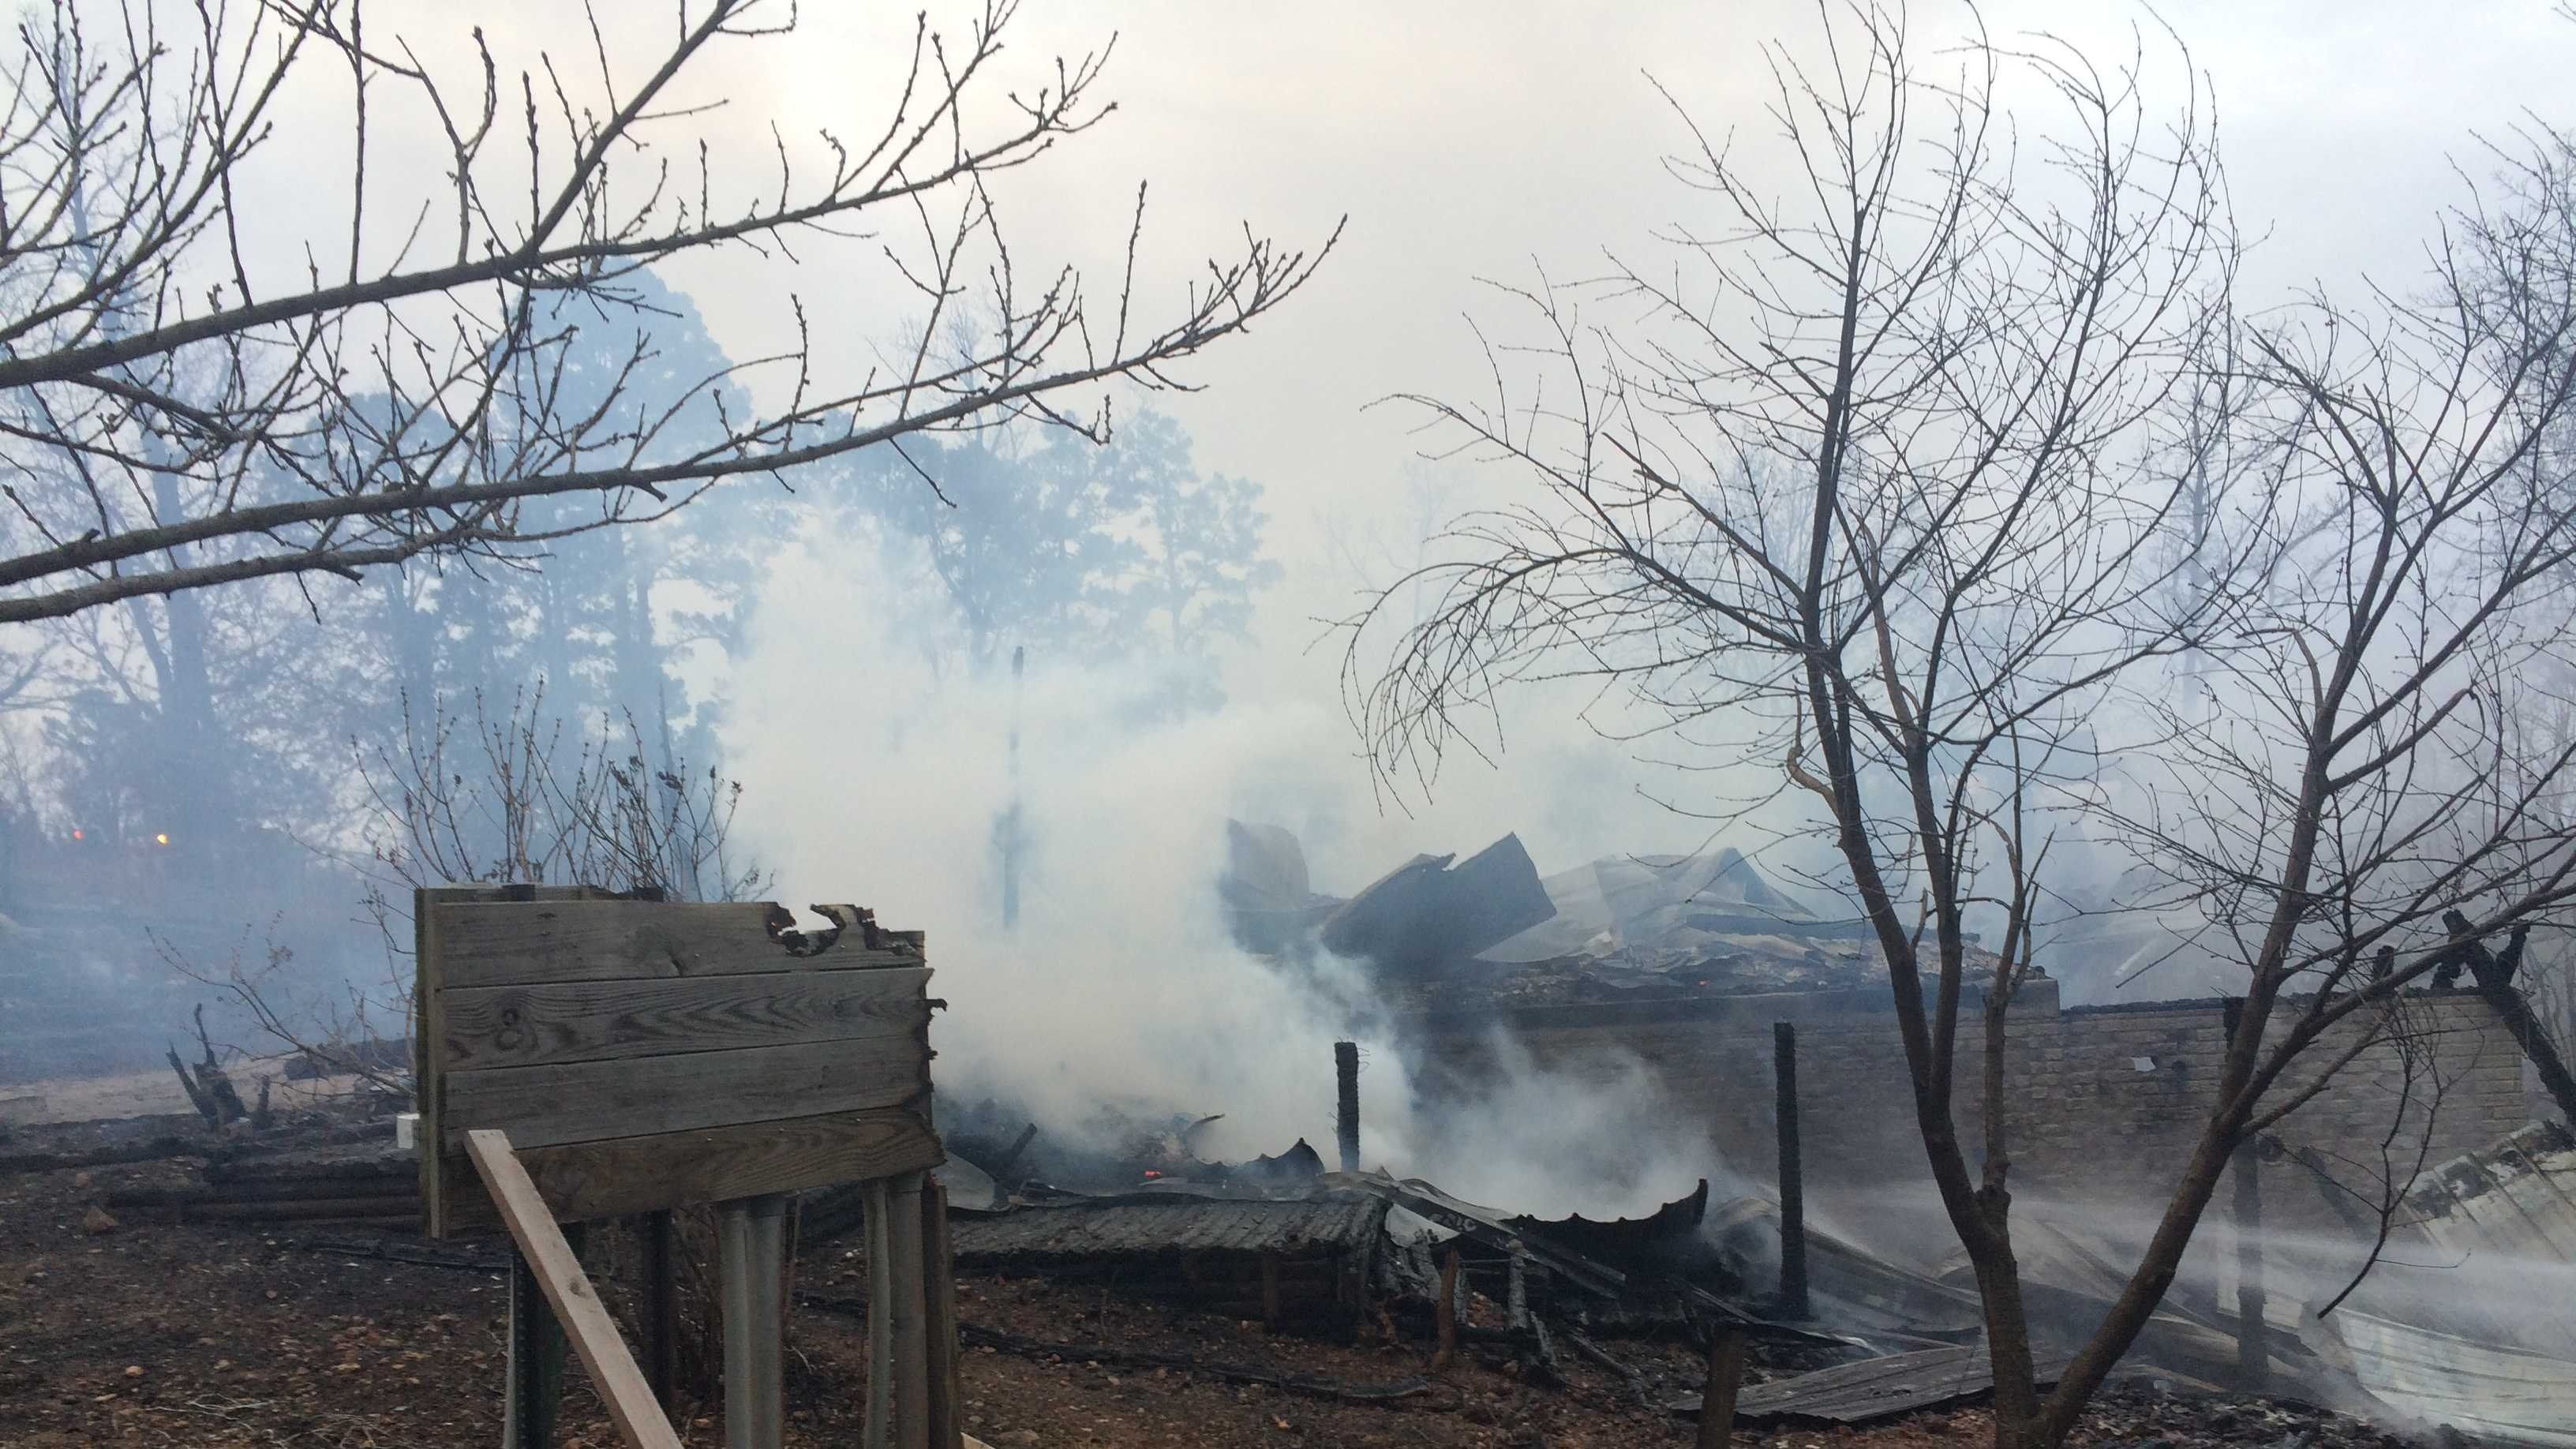 A woman escapes this log cabin after her dog woke her up. (Courtesy: Eureka Springs Fire Department)